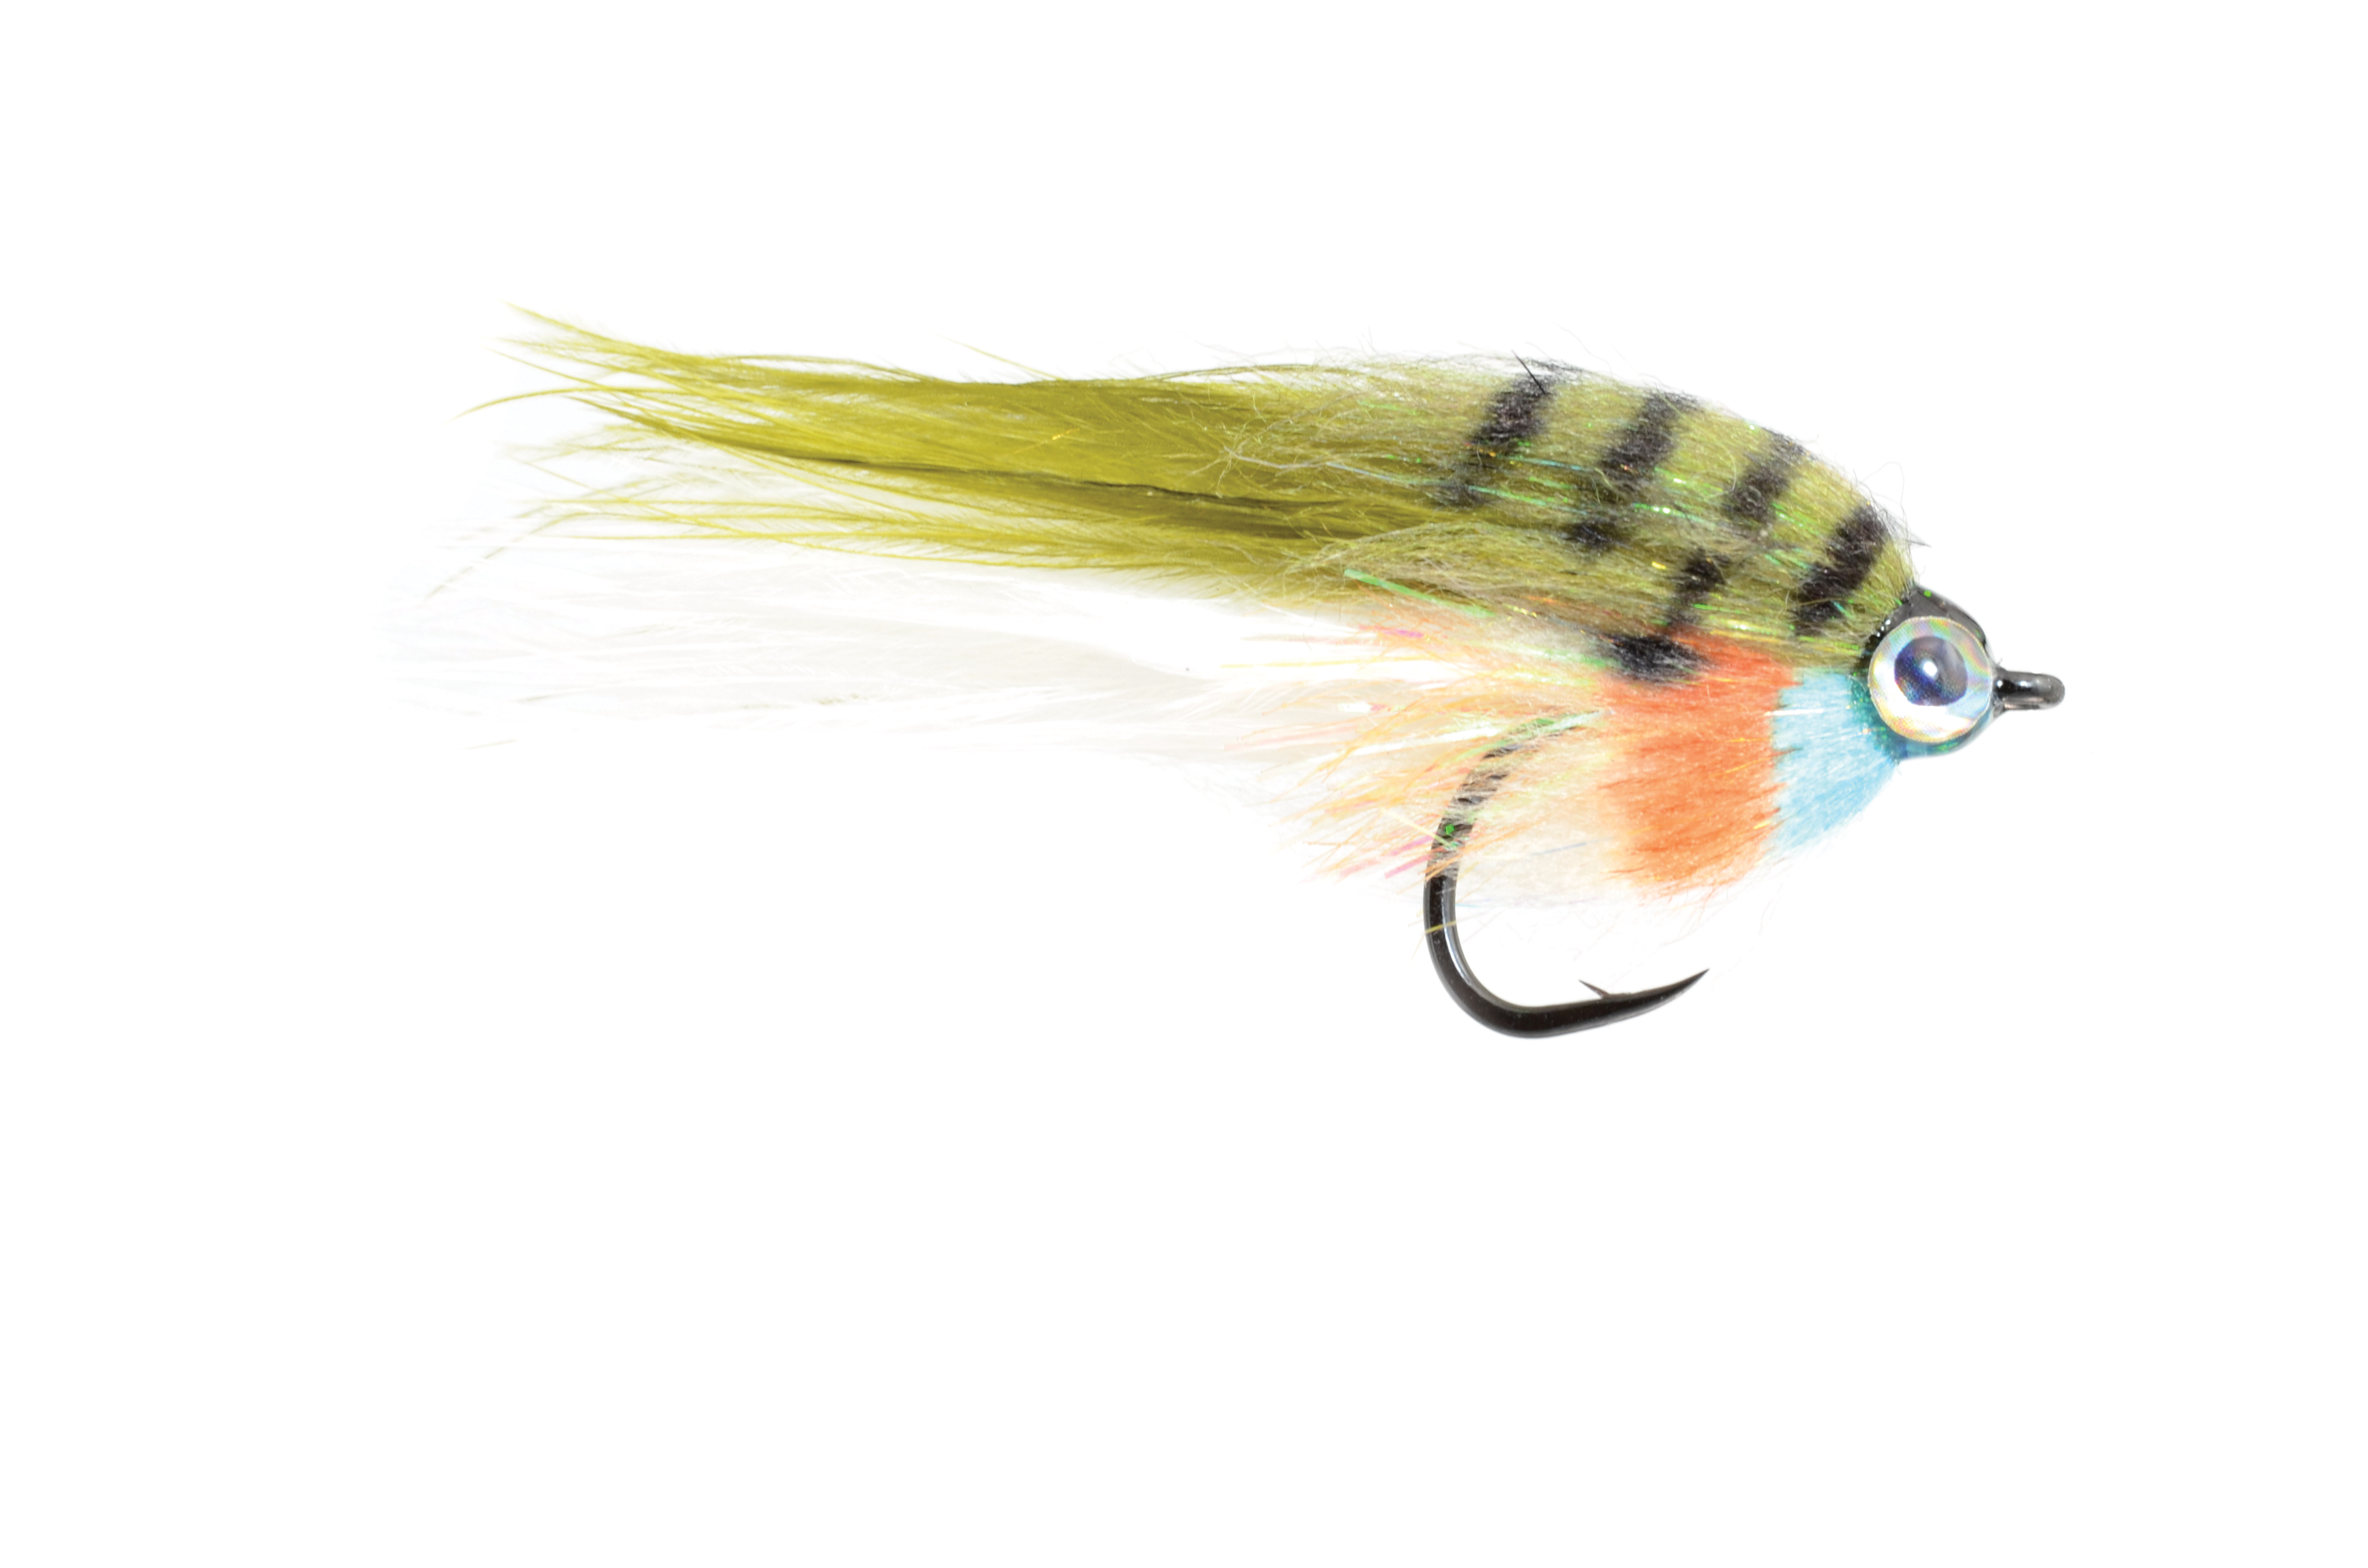 Low Fat Minnow Bluegill